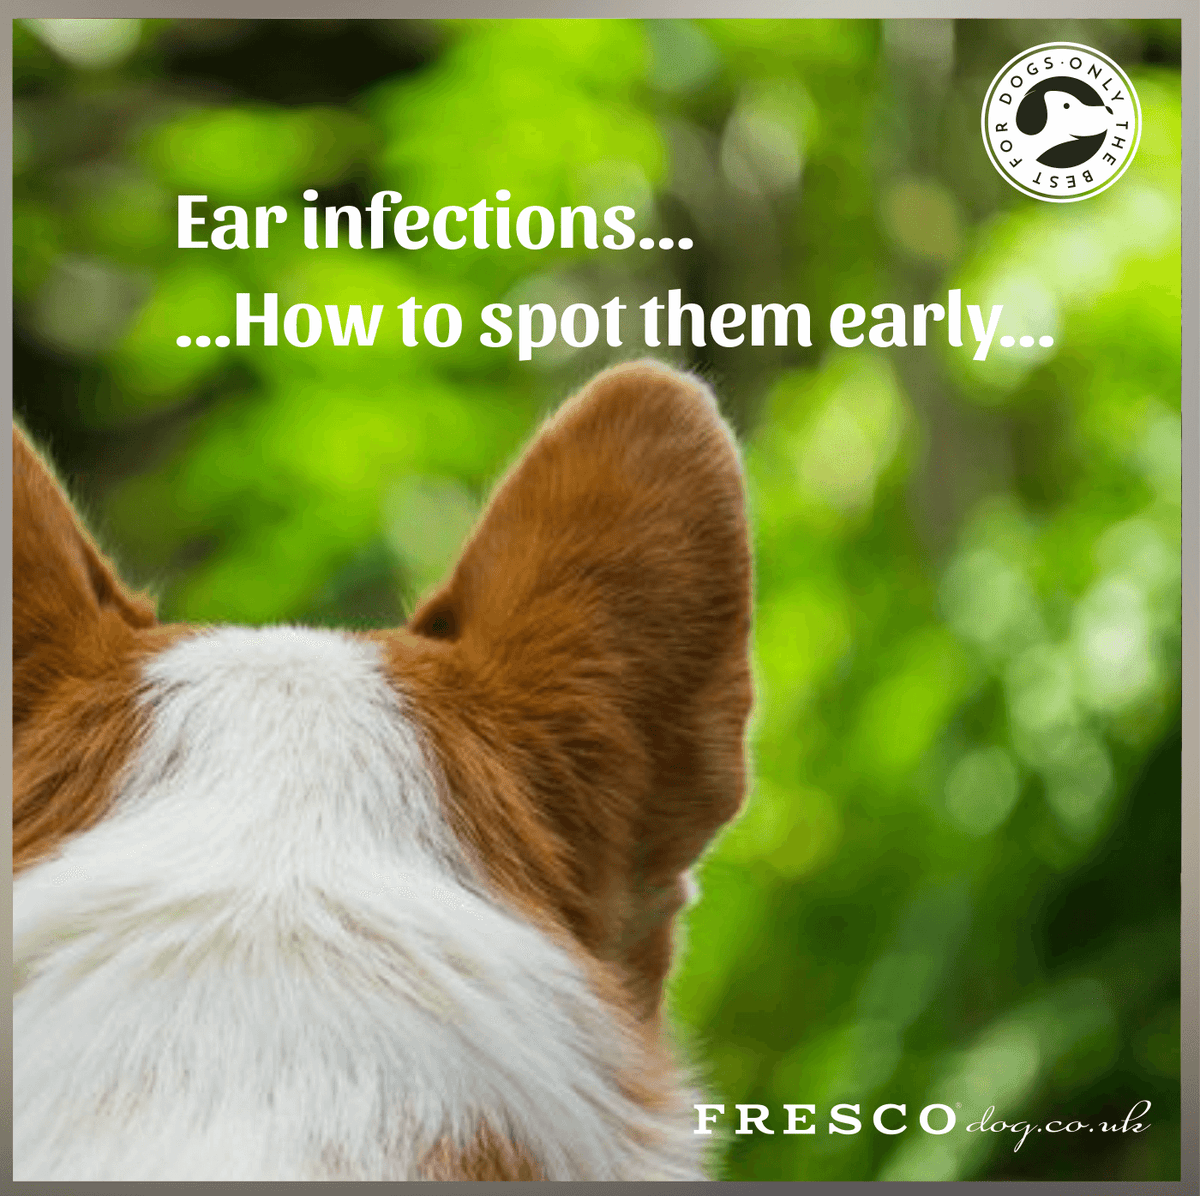 Dog ear infections....What are the signs?